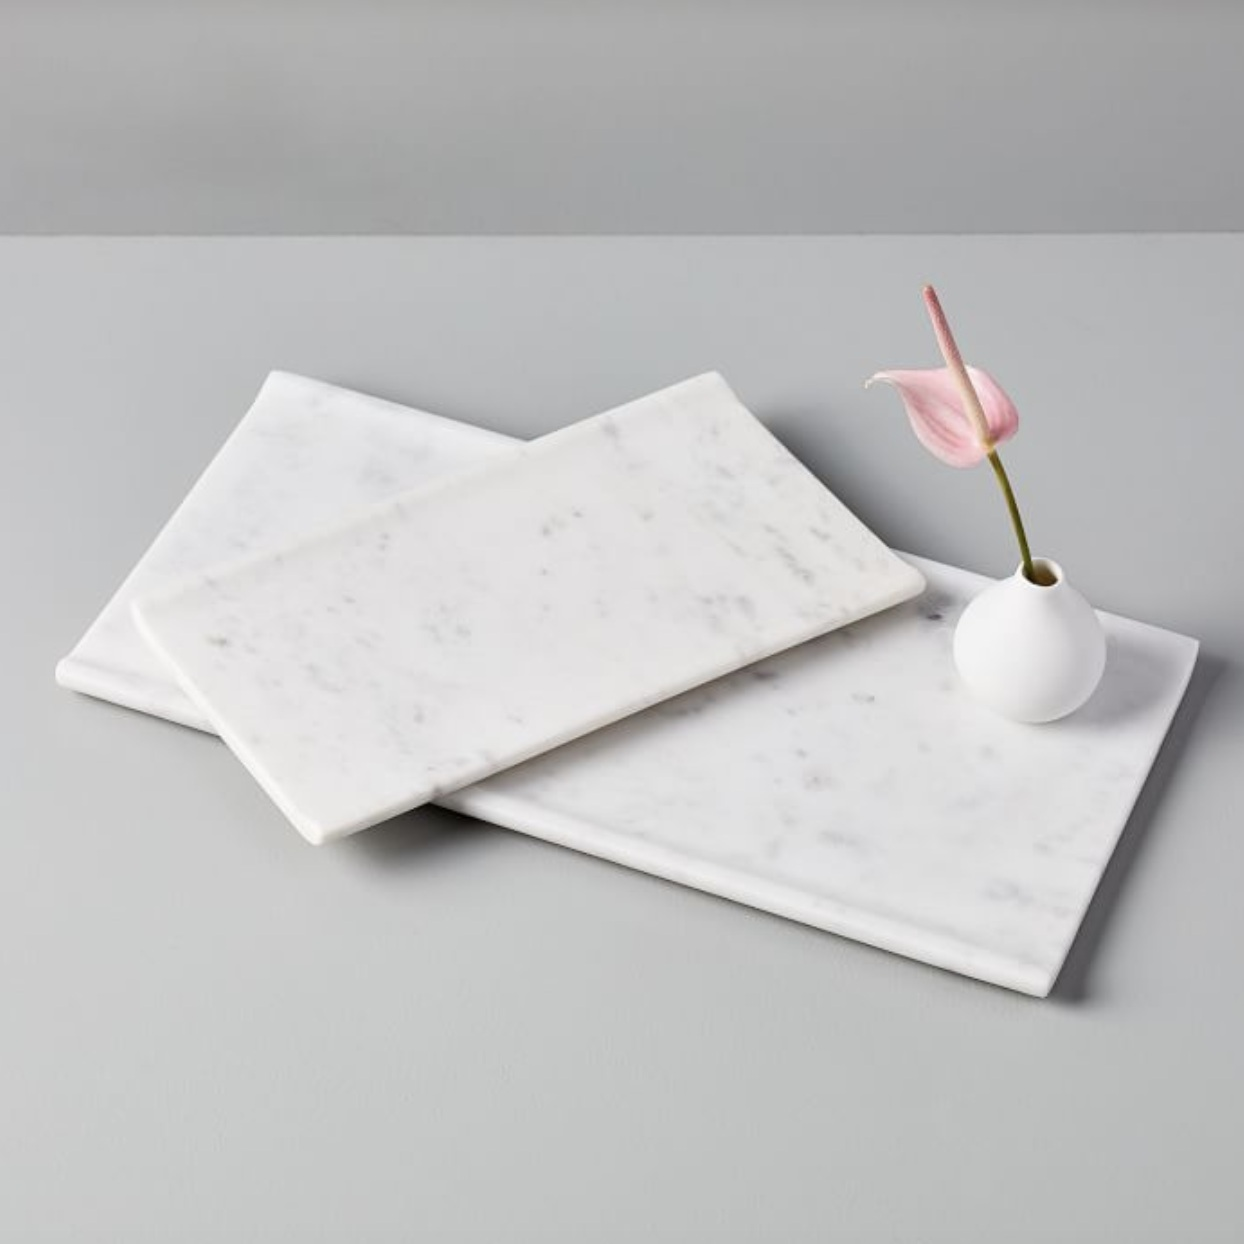 """Foundations"" - Marble tray with lip, $24-$49; West Elm"